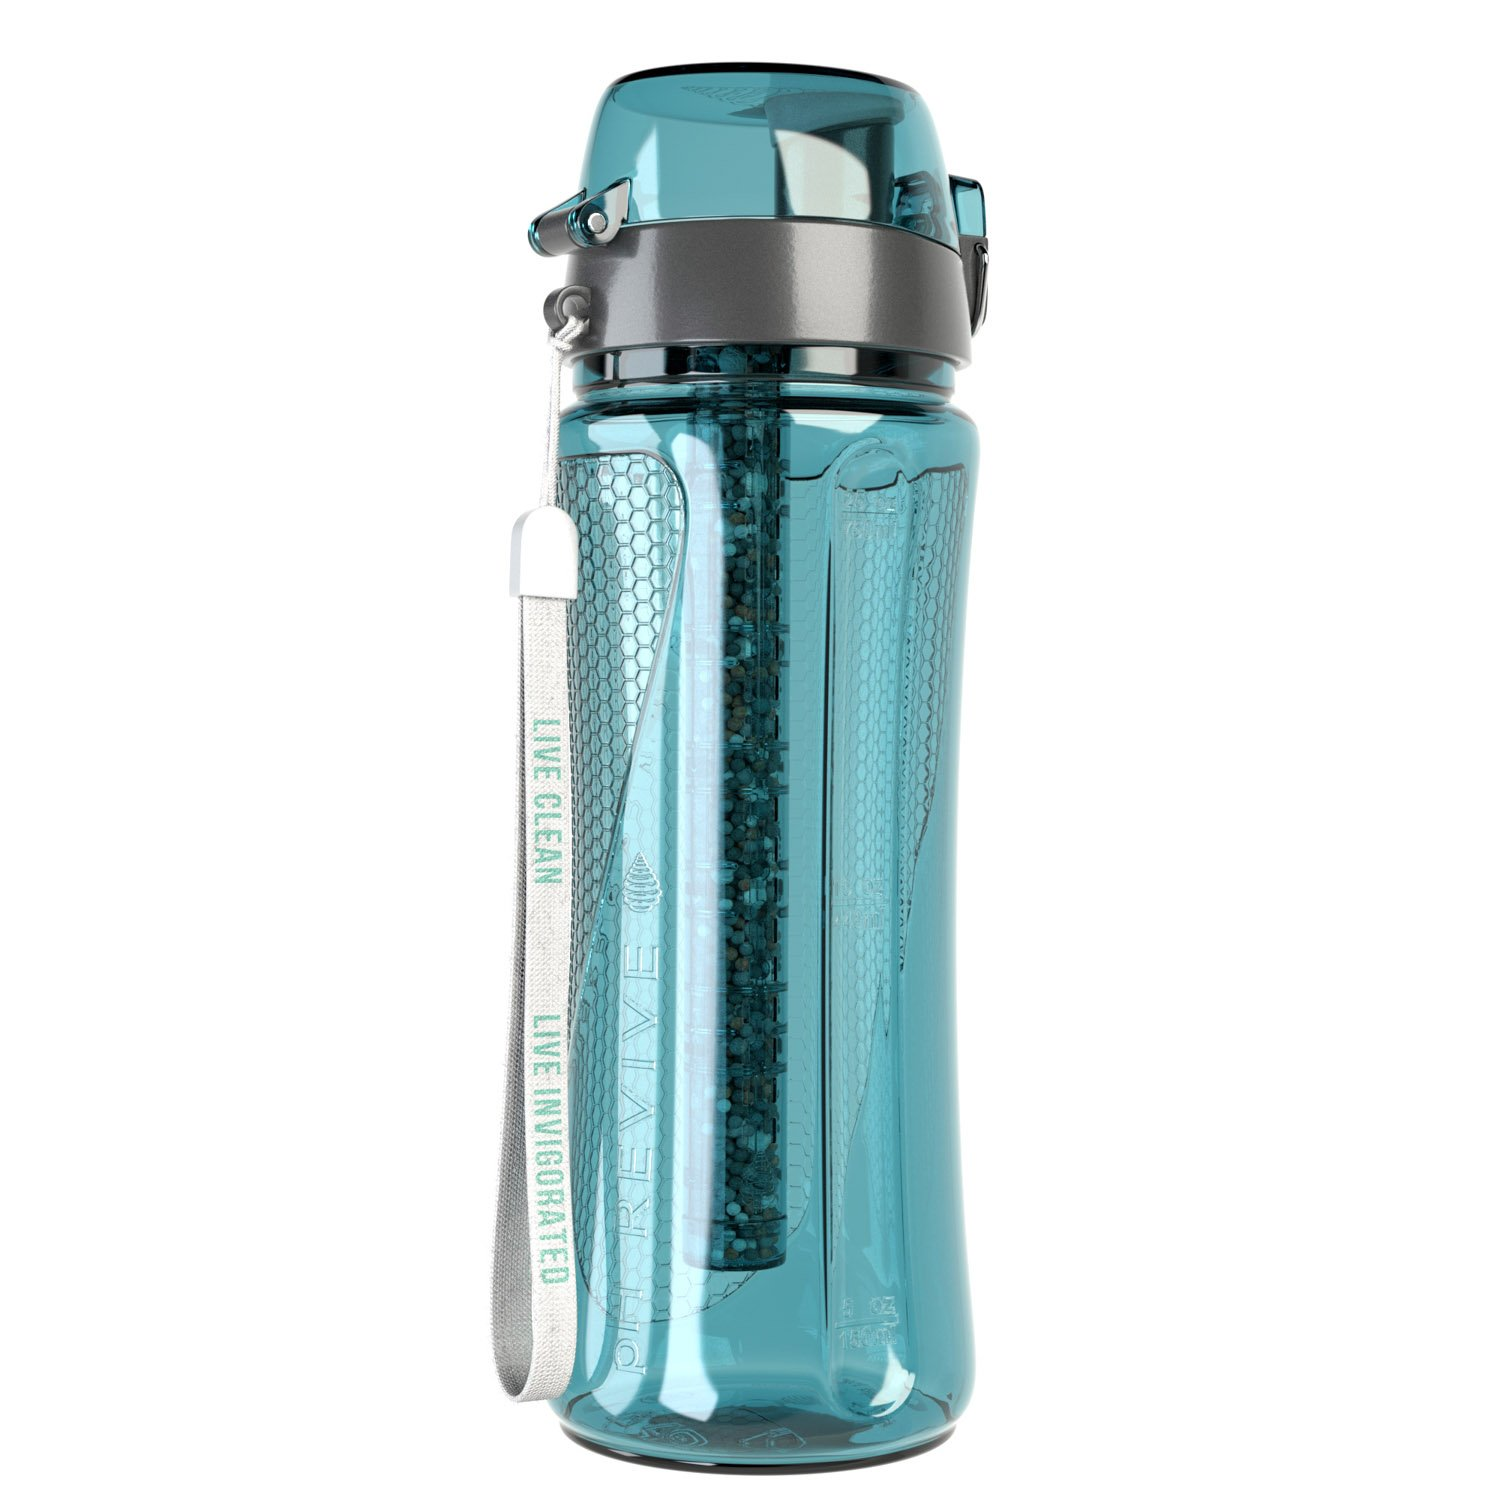 pH REVIVE Alkaline Water Filter Bottle & Carry Case - Water Purifier Bottle - Alkaline Water Ionizer - Filter Water Bottle - Water Filtration System, 25oz, 750ml (Aqua). by Invigorated Water